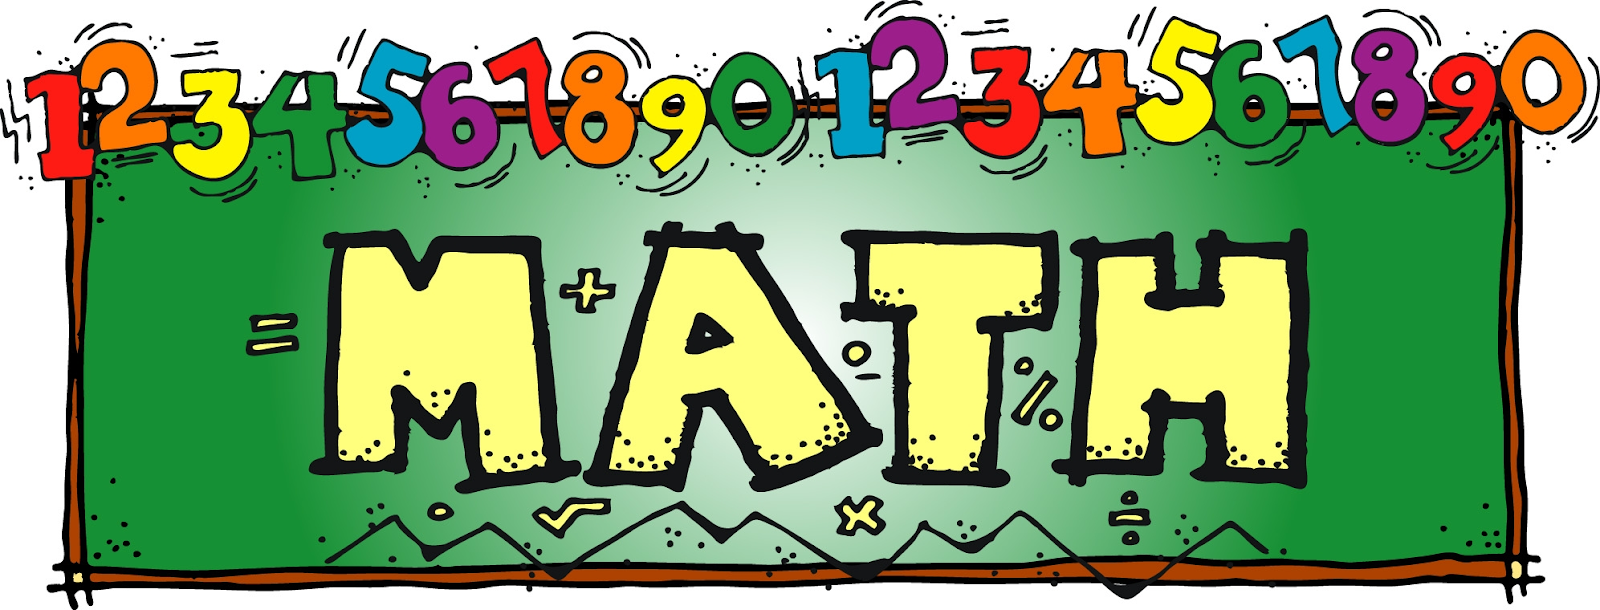 Image result for common core math clipart